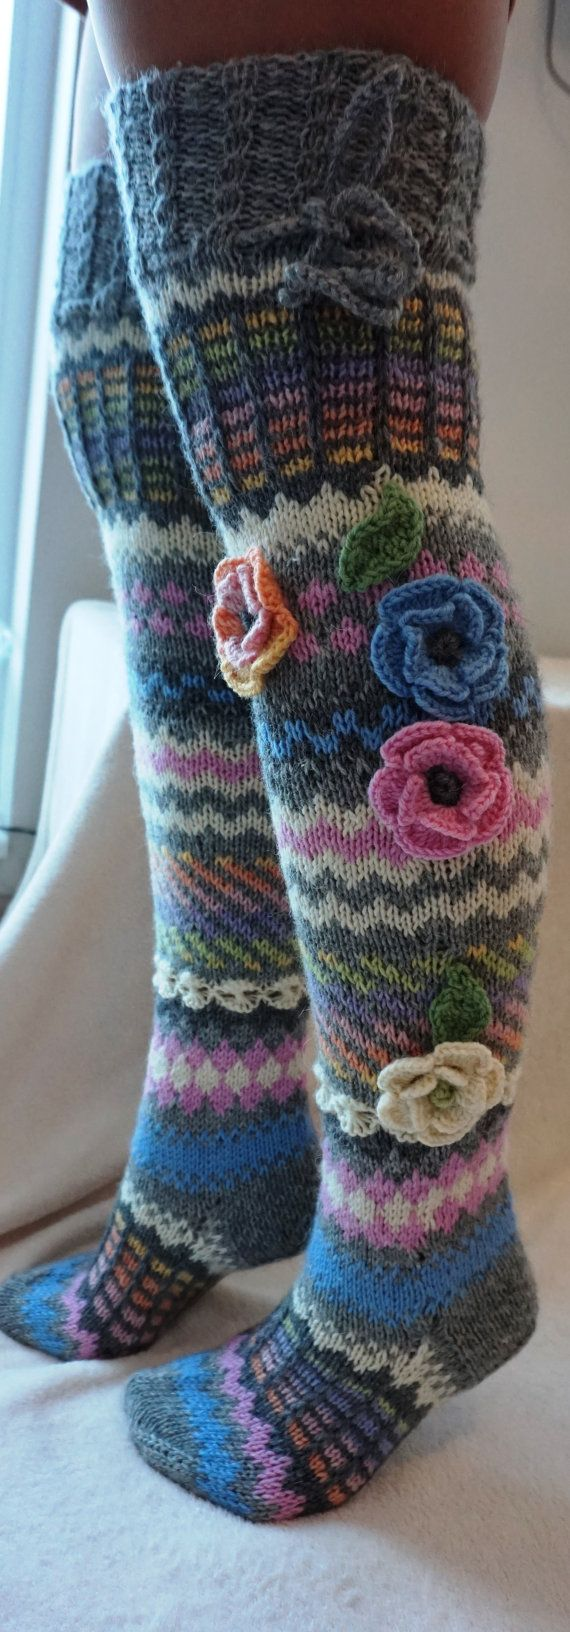 Wool socks Hand knit over knee socks  by WillowFairyJewelry